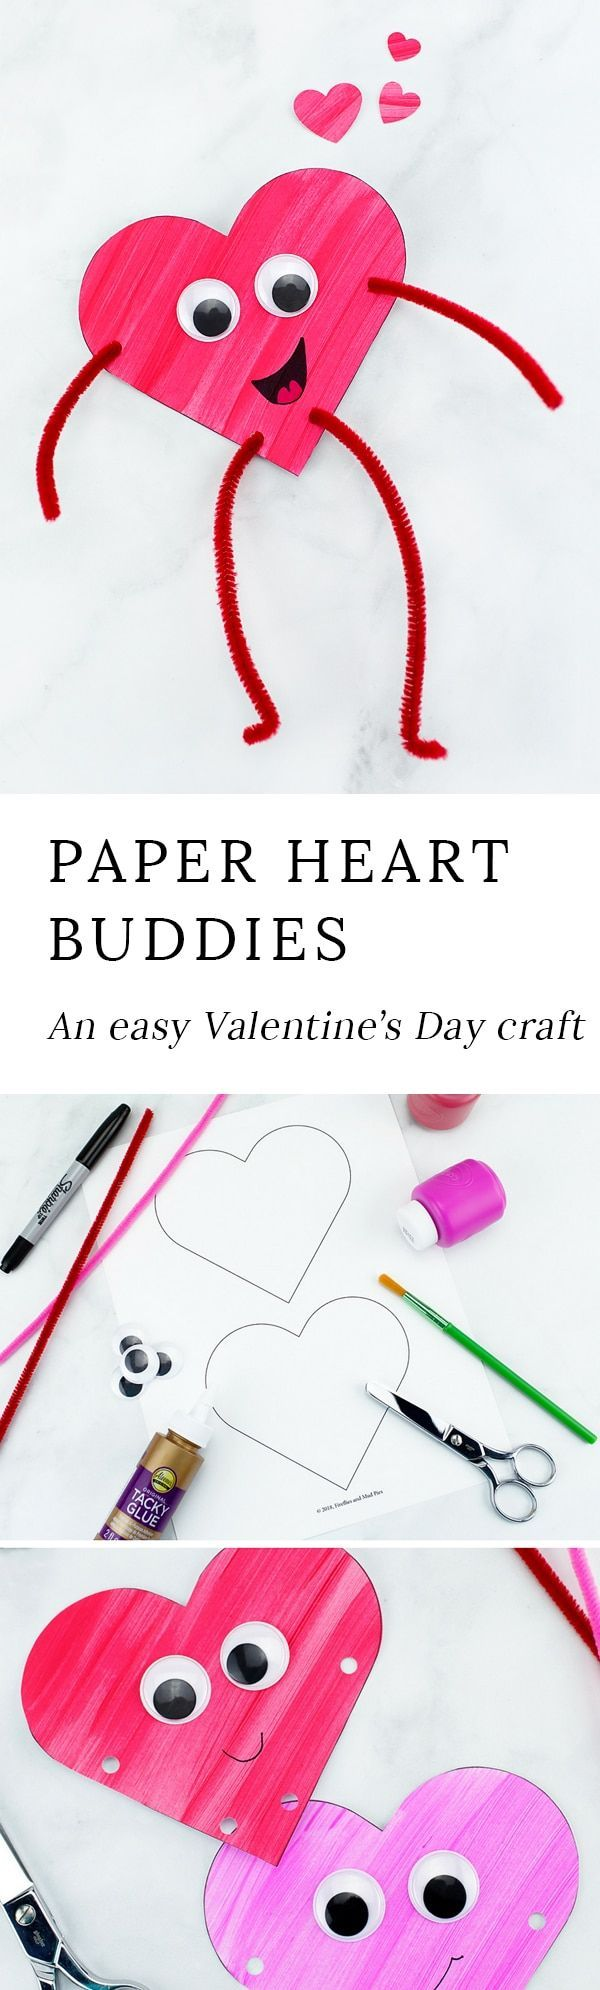 Looking for an easy Valentine's Day craft for kids? Colorful and fun Heart Buddies,made from our free template and basic craft supplies, are perfect for home or school! #valentinesdaycraftsforkids #preschoolvalentinecrafts #heartcraftsforkids #easycraftsforkids via @https://www.pinterest.com/fireflymudpie/